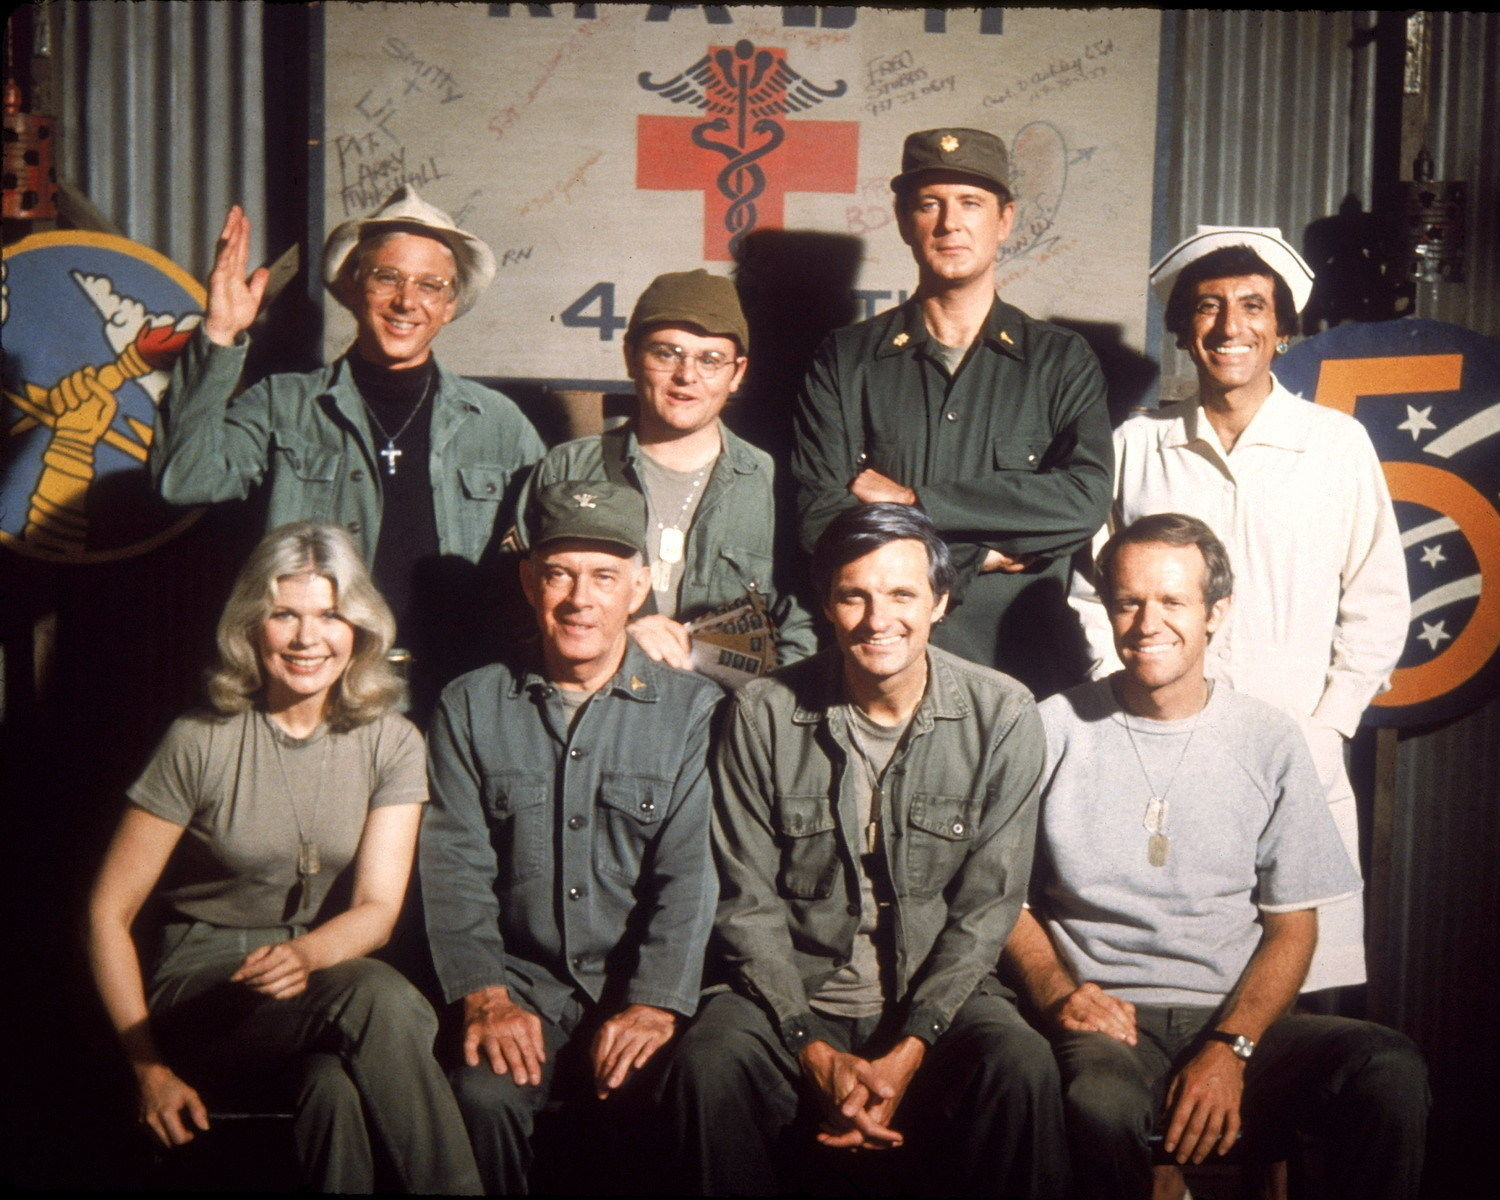 CAST_PHOTO_FROM_THE_TV_SHOW